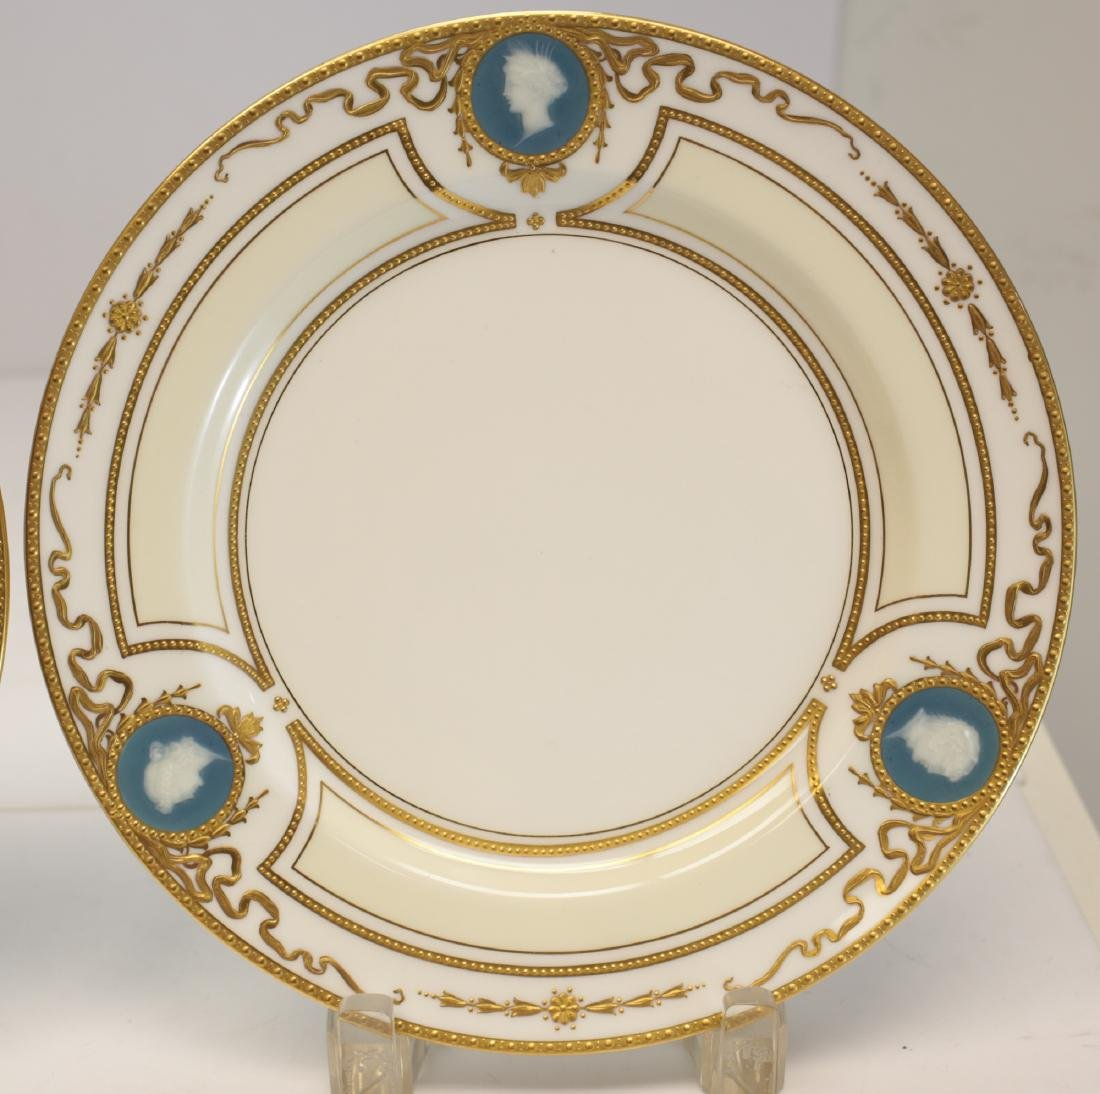 Minton for Tiffany Pate Sur Pate Luncheon Plates - 3